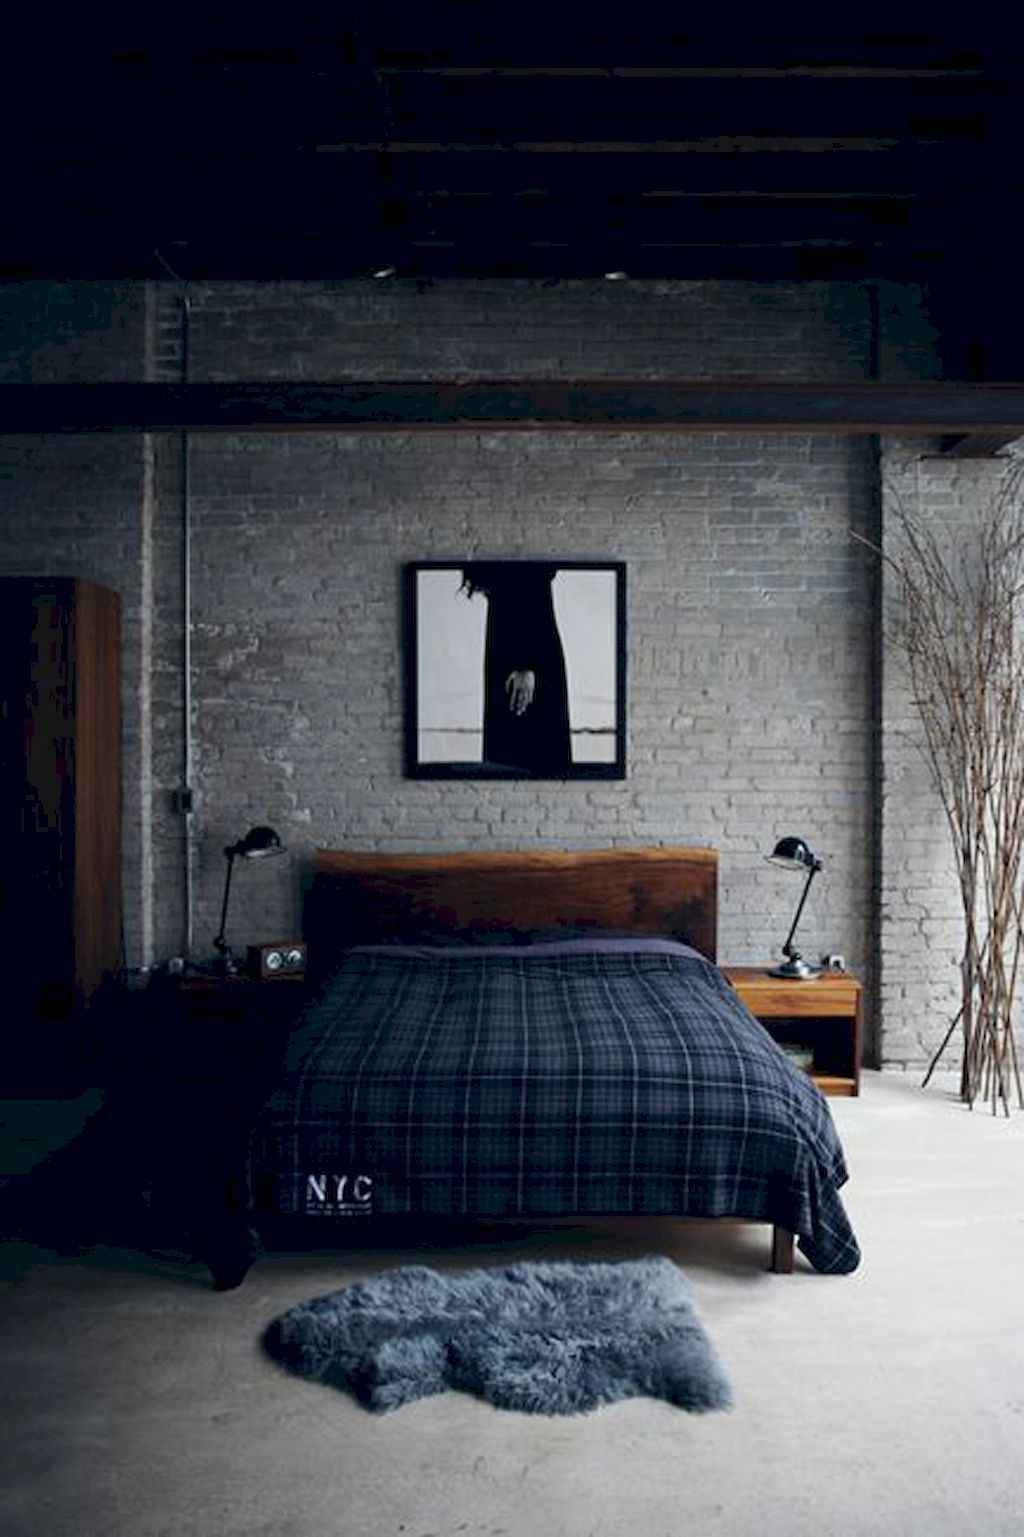 Awesome bedroom decoration ideas (45)